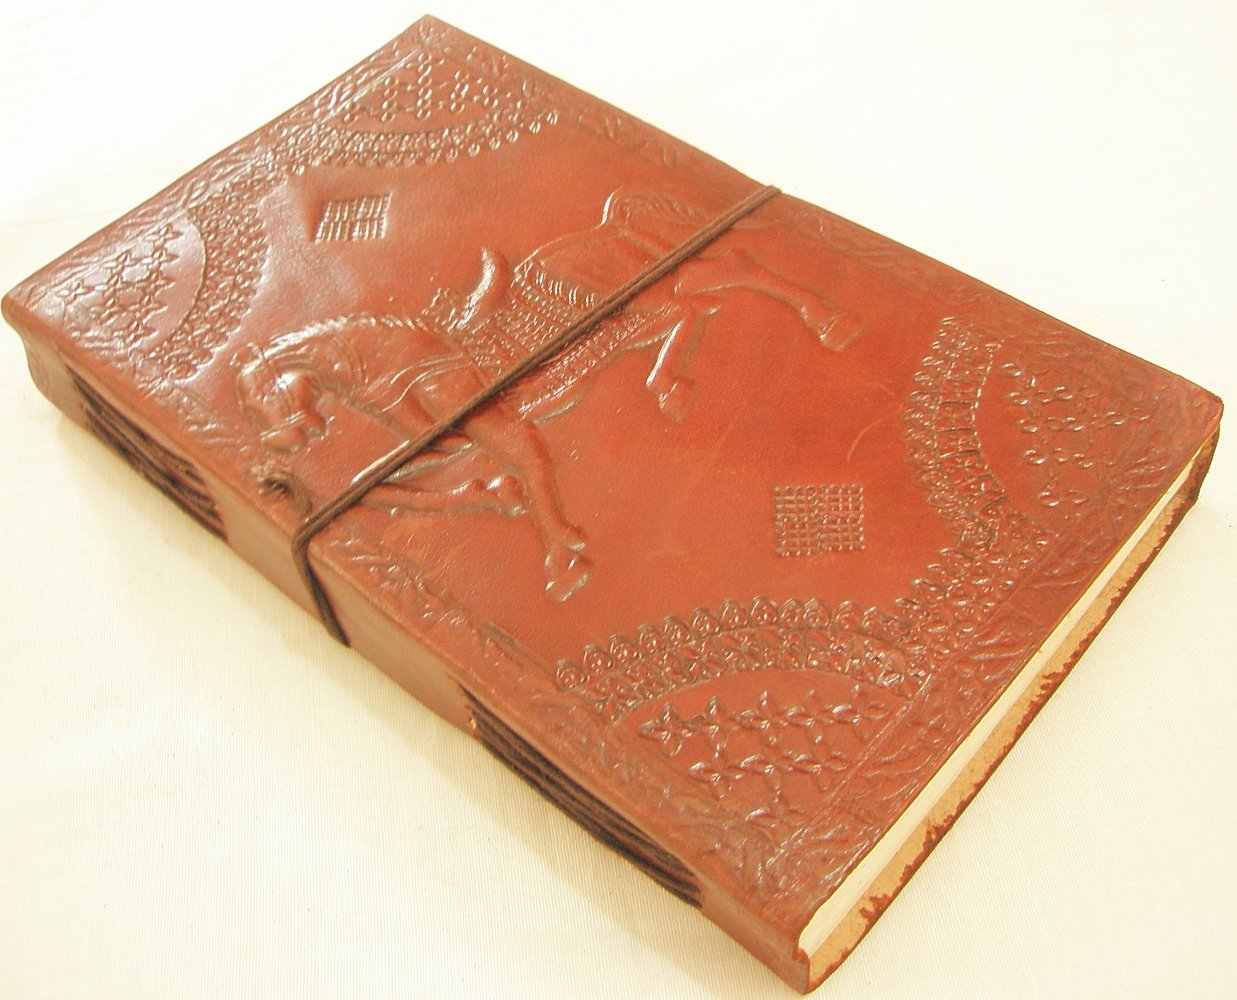 Handcrafted Horse Embossed Brown Leather Bound Journal Vintage Diary Writing Notebook Art Sketchbook